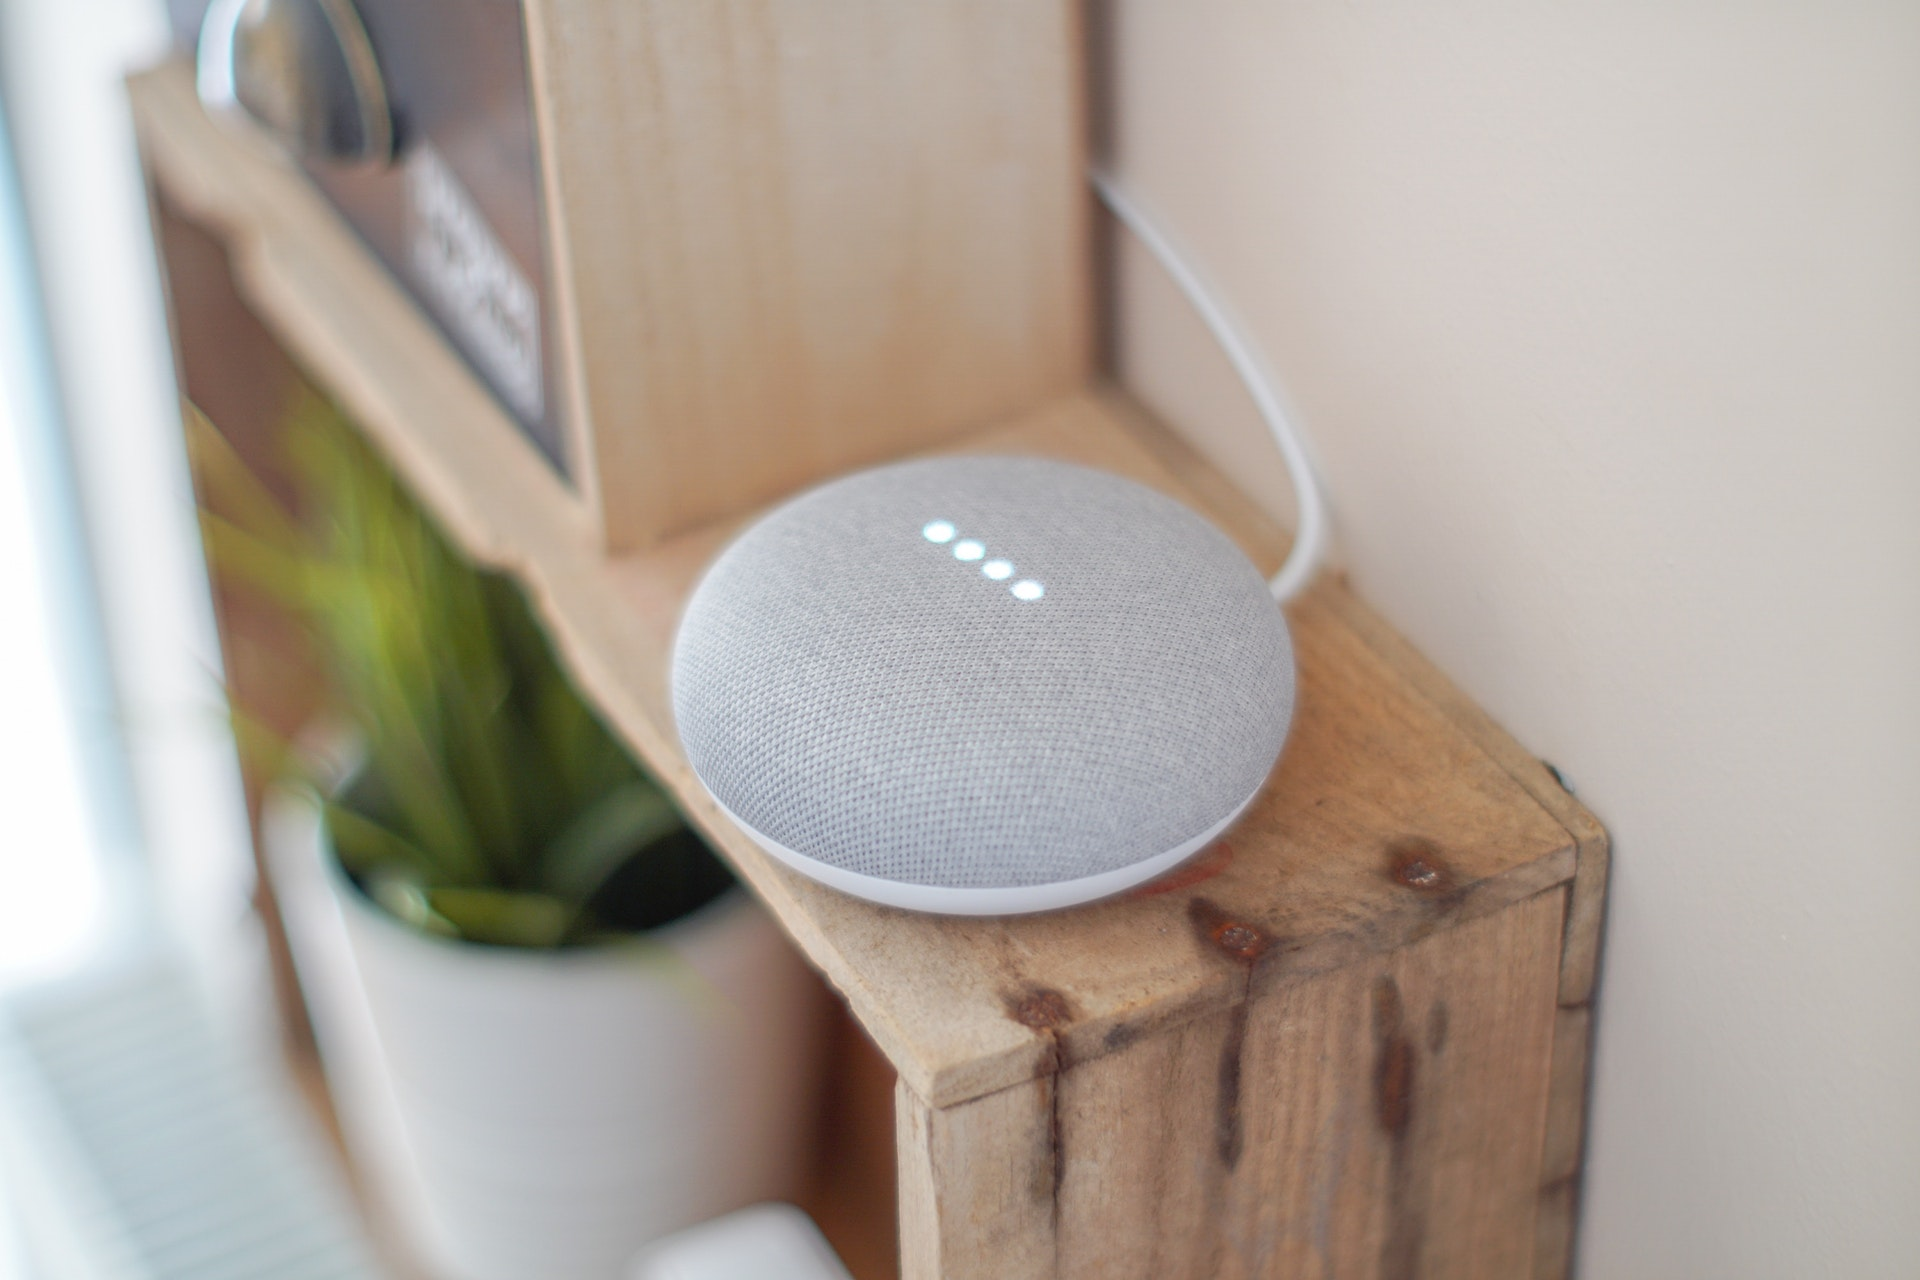 round grey google home speaker on brown board